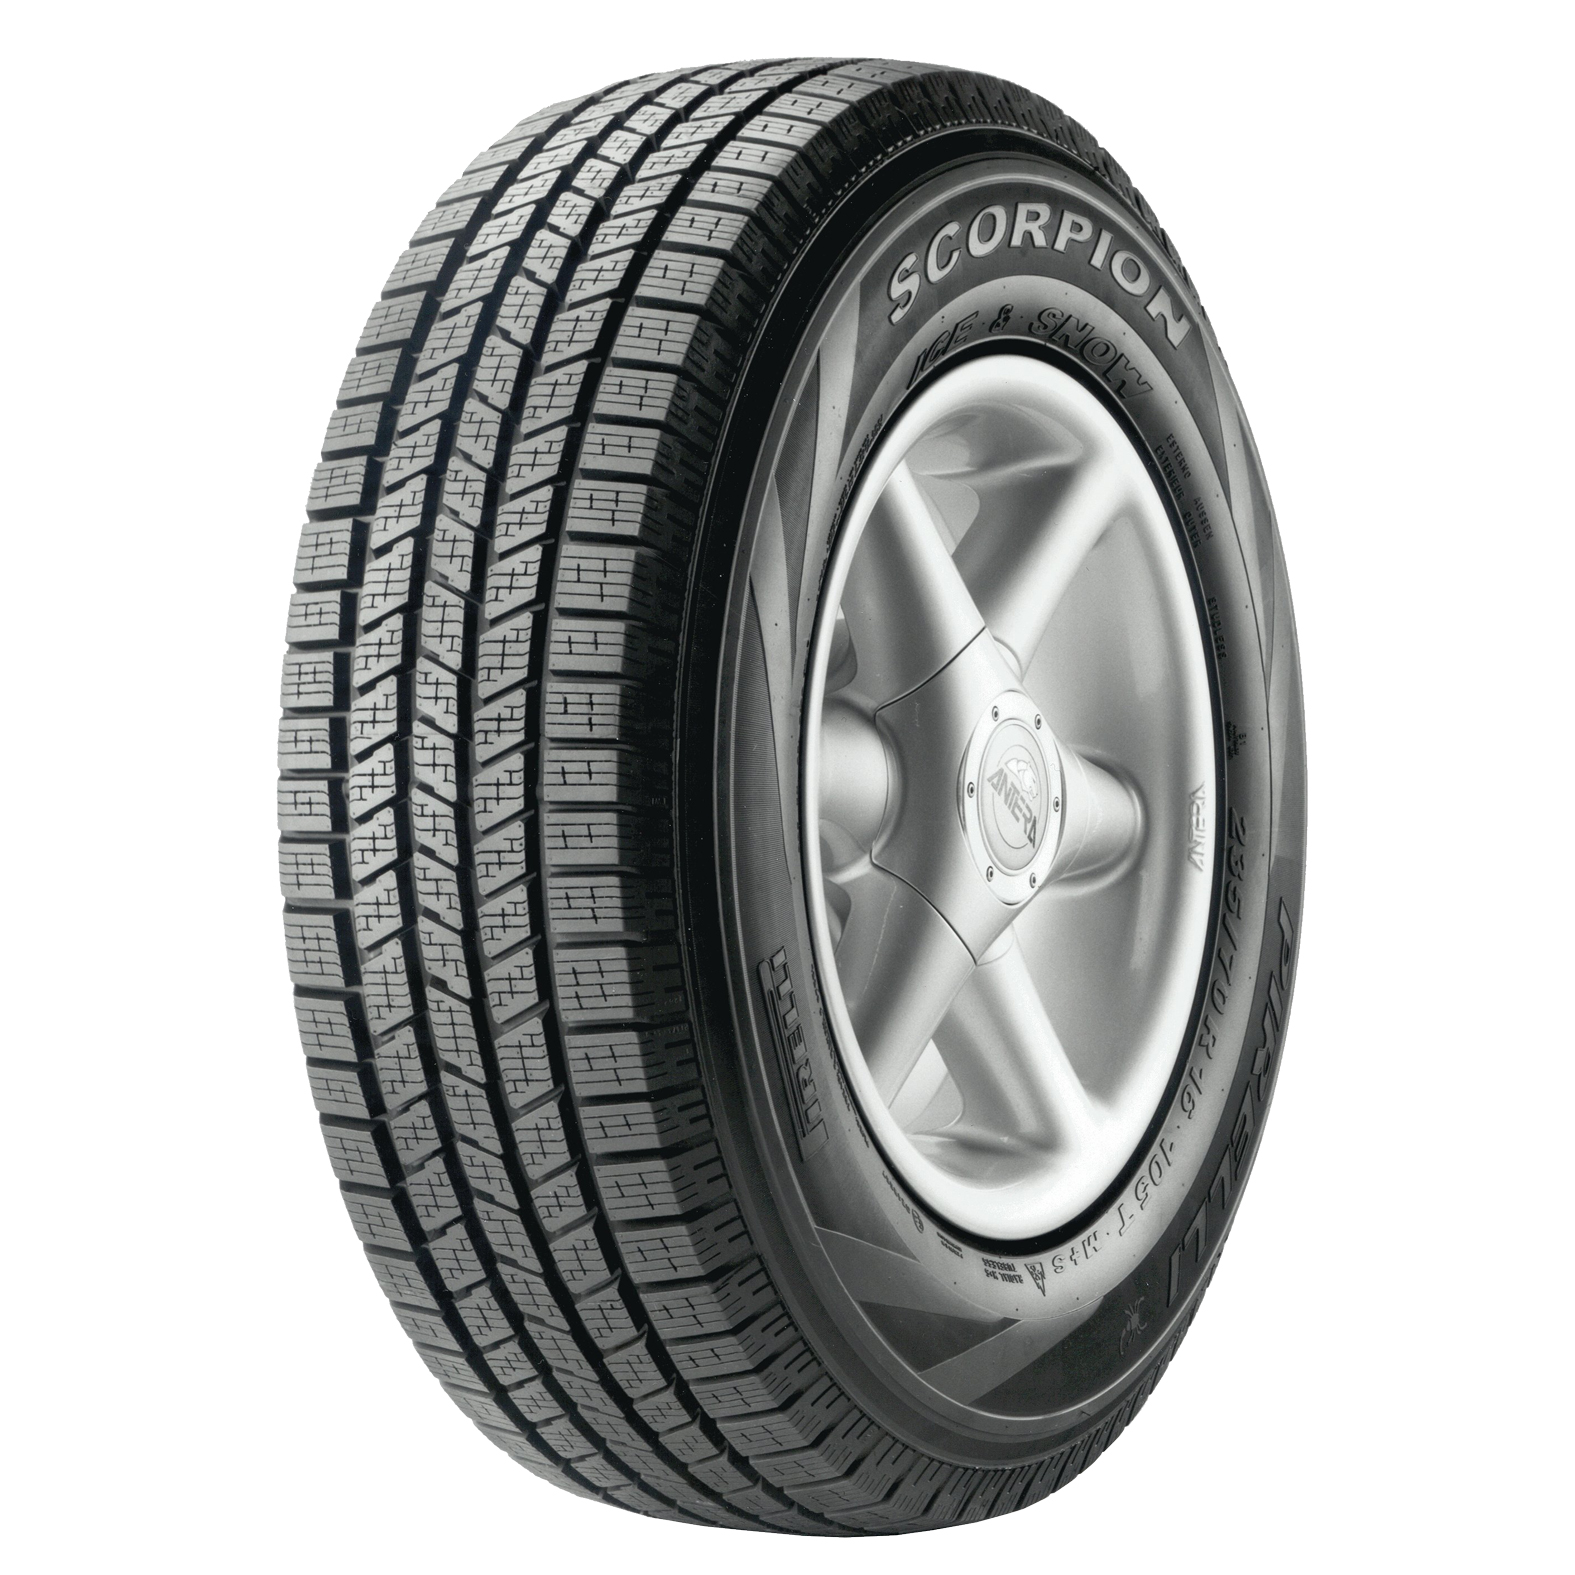 Pirelli Scorpion Ice and Snow tire - angle